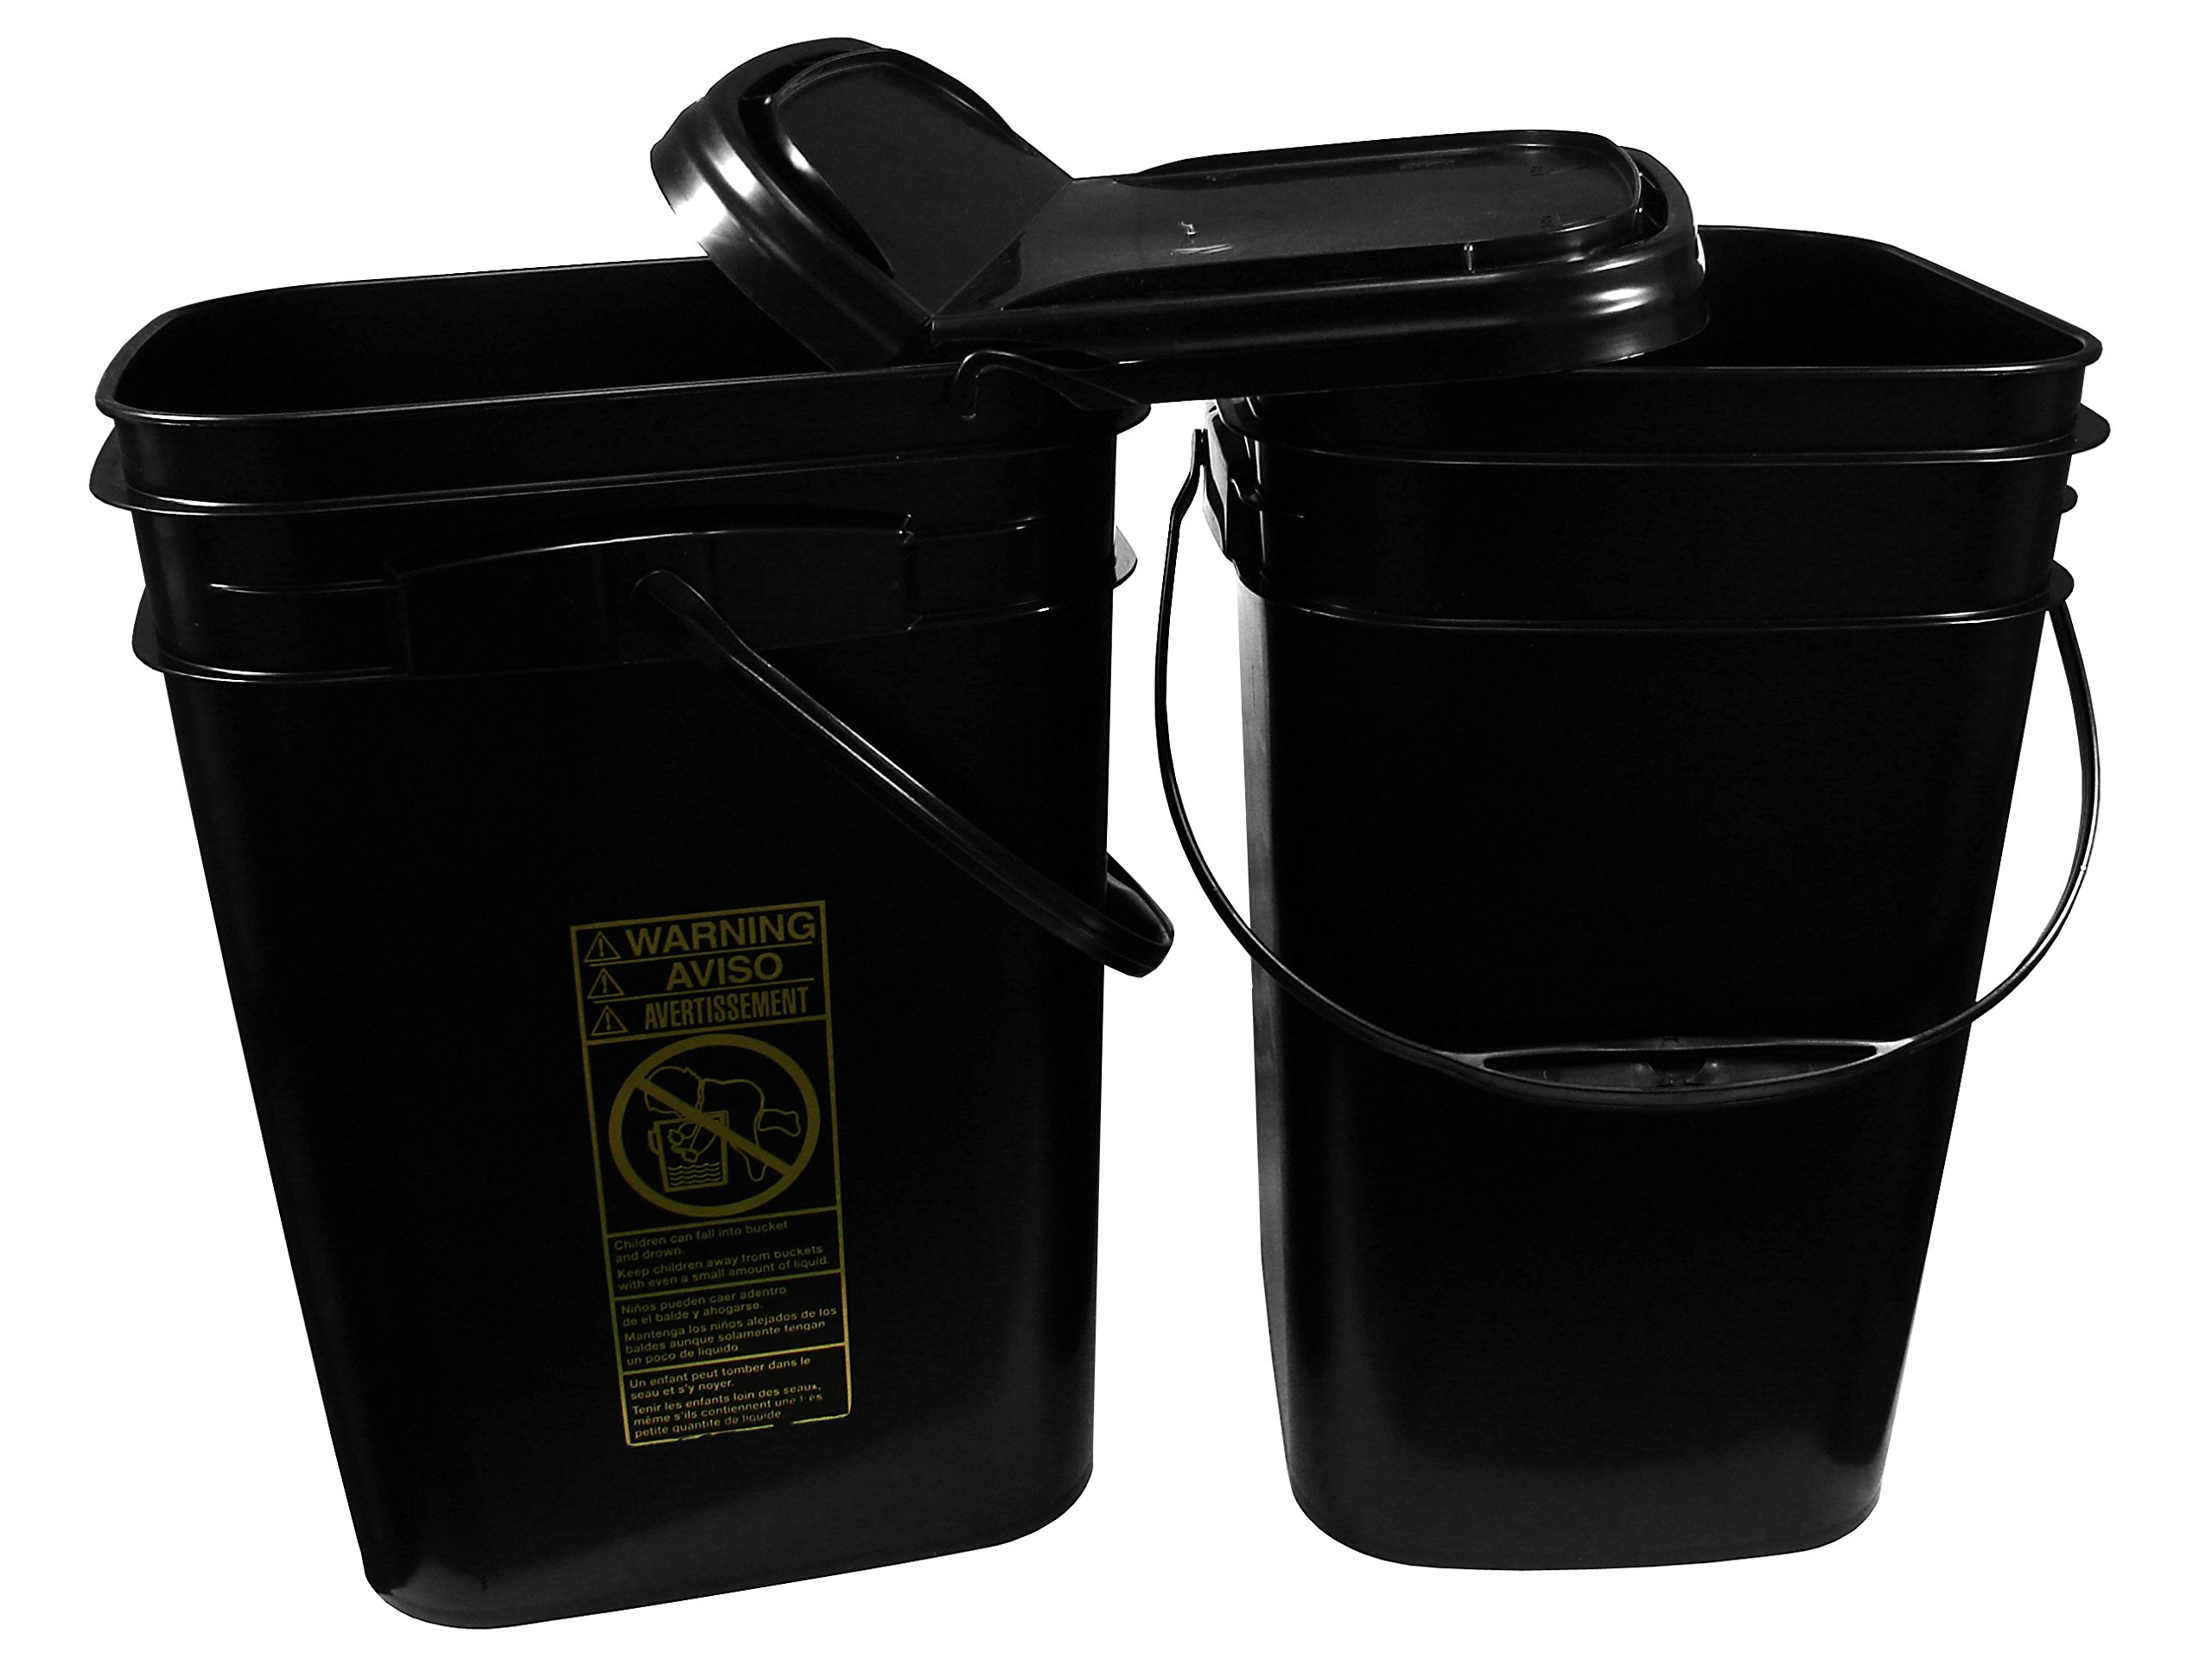 5.3 Gallon Black Rectangular Bucket/Pail with Hinged Snap Lid, 2 Pack